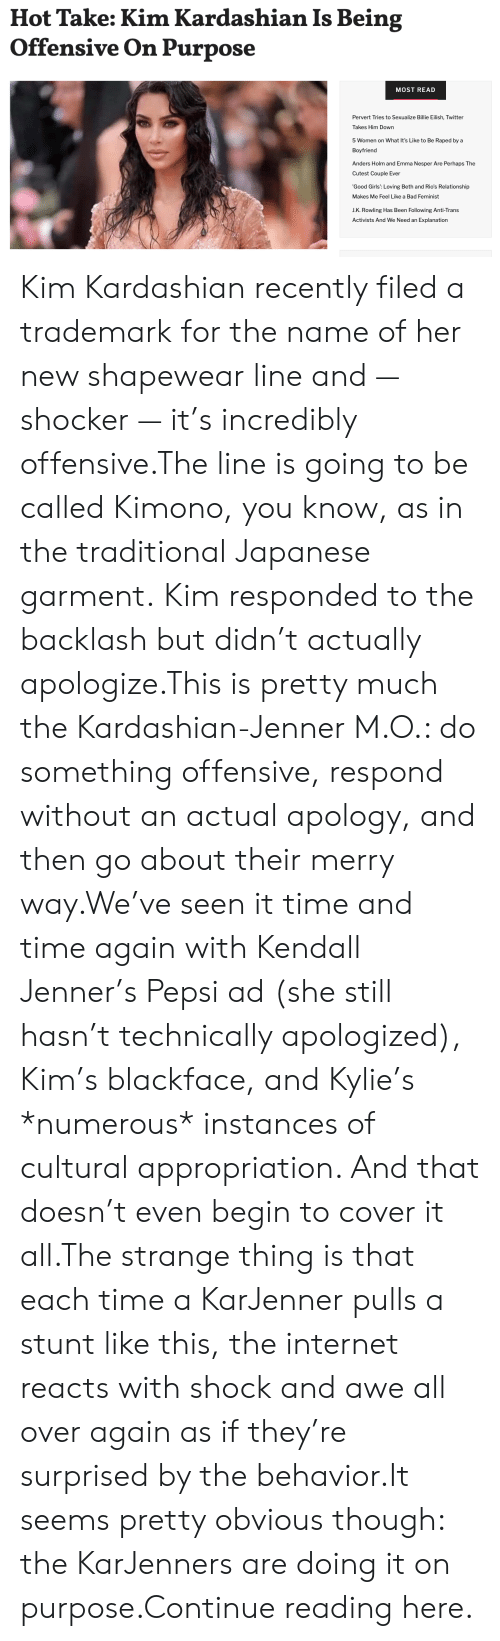 J K: Hot Take: Kim Kardashian Is Being  Offensive On Purpose  MOST READ  Pervert Tries to Sexualize Billie Eilish, Twitter  Takes Him Down  5 Women on What It's Like to Be Raped by a  Boyfriend  Anders Holm and Emma Nesper Are Perhaps The  Cutest Couple Ever  'Good Girls': Loving Beth and Rio's Relationship  Makes Me Feel Like a Bad Feminist  J.K. Rowling Has Been Following Anti-Trans  Activists And We Need an Explanation Kim Kardashian recently filed a trademark for the name of her new shapewear line and — shocker — it's incredibly offensive.The line is going to be called Kimono, you know, as in the traditional Japanese garment. Kim responded to the backlash but didn't actually apologize.This is pretty much the Kardashian-Jenner M.O.: do something offensive, respond without an actual apology, and then go about their merry way.We've seen it time and time again with Kendall Jenner's Pepsi ad (she still hasn't technically apologized), Kim's blackface, and Kylie's *numerous* instances of cultural appropriation. And that doesn't even begin to cover it all.The strange thing is that each time a KarJenner pulls a stunt like this, the internet reacts with shock and awe all over again as if they're surprised by the behavior.It seems pretty obvious though: the KarJenners are doing it on purpose.Continue reading here.